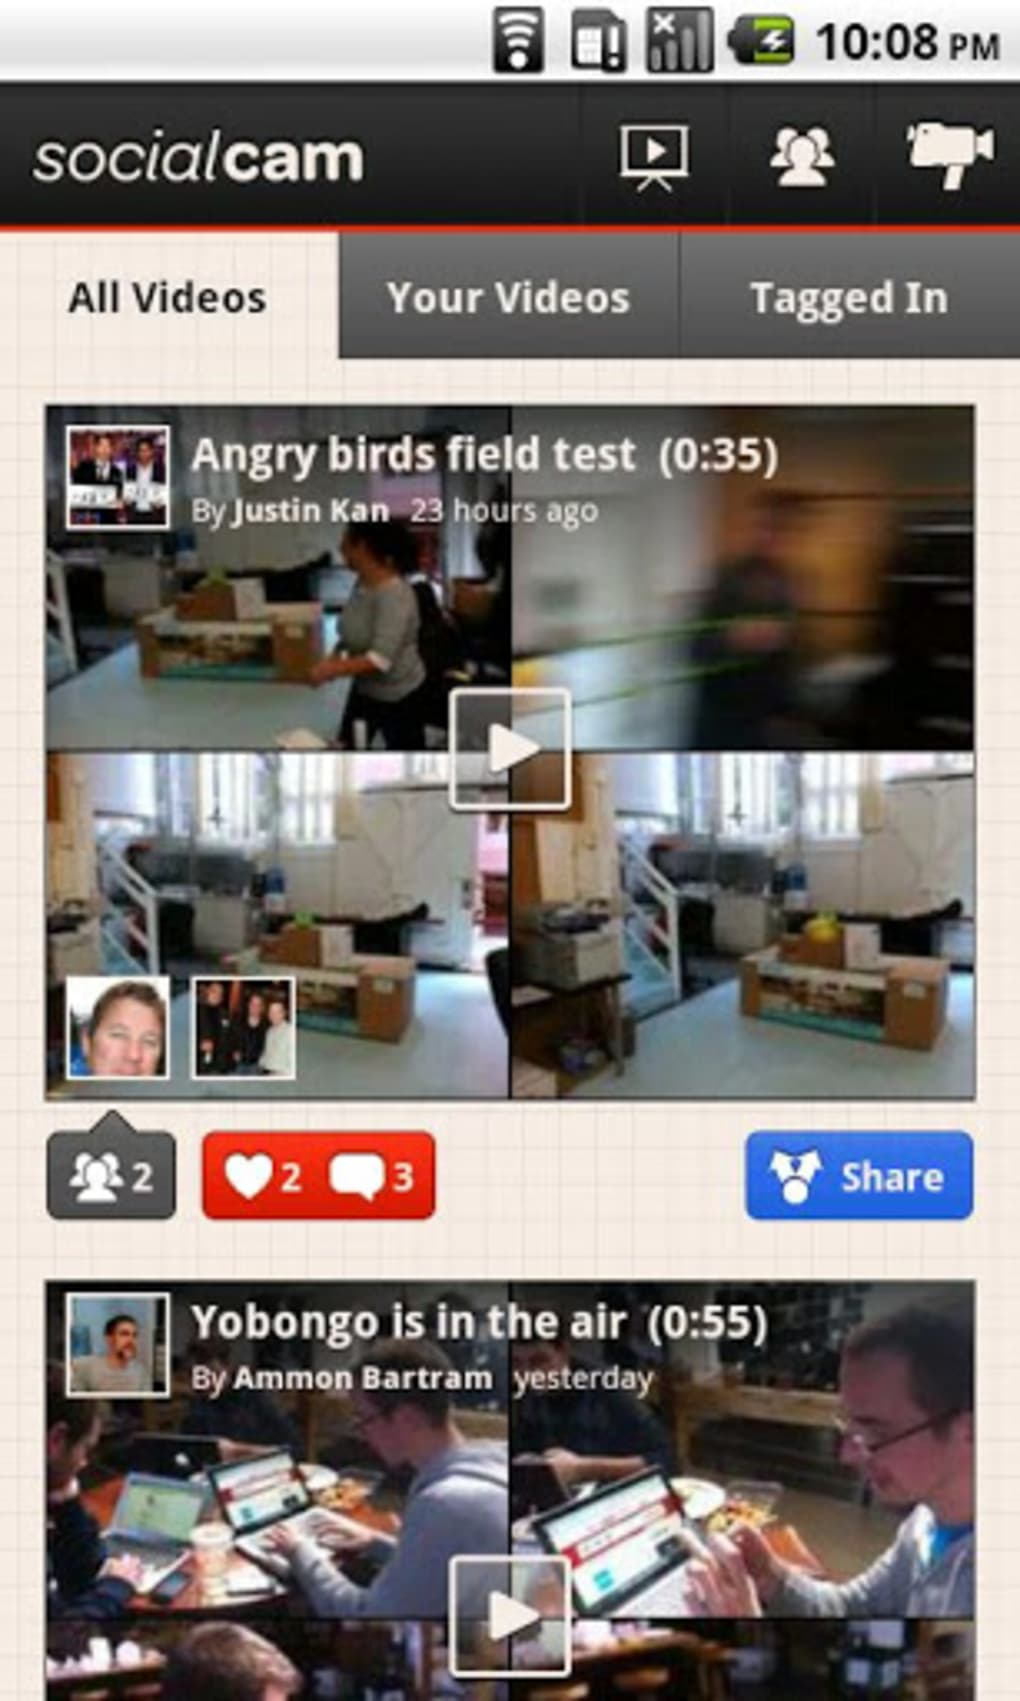 Socialcam for Android - Download